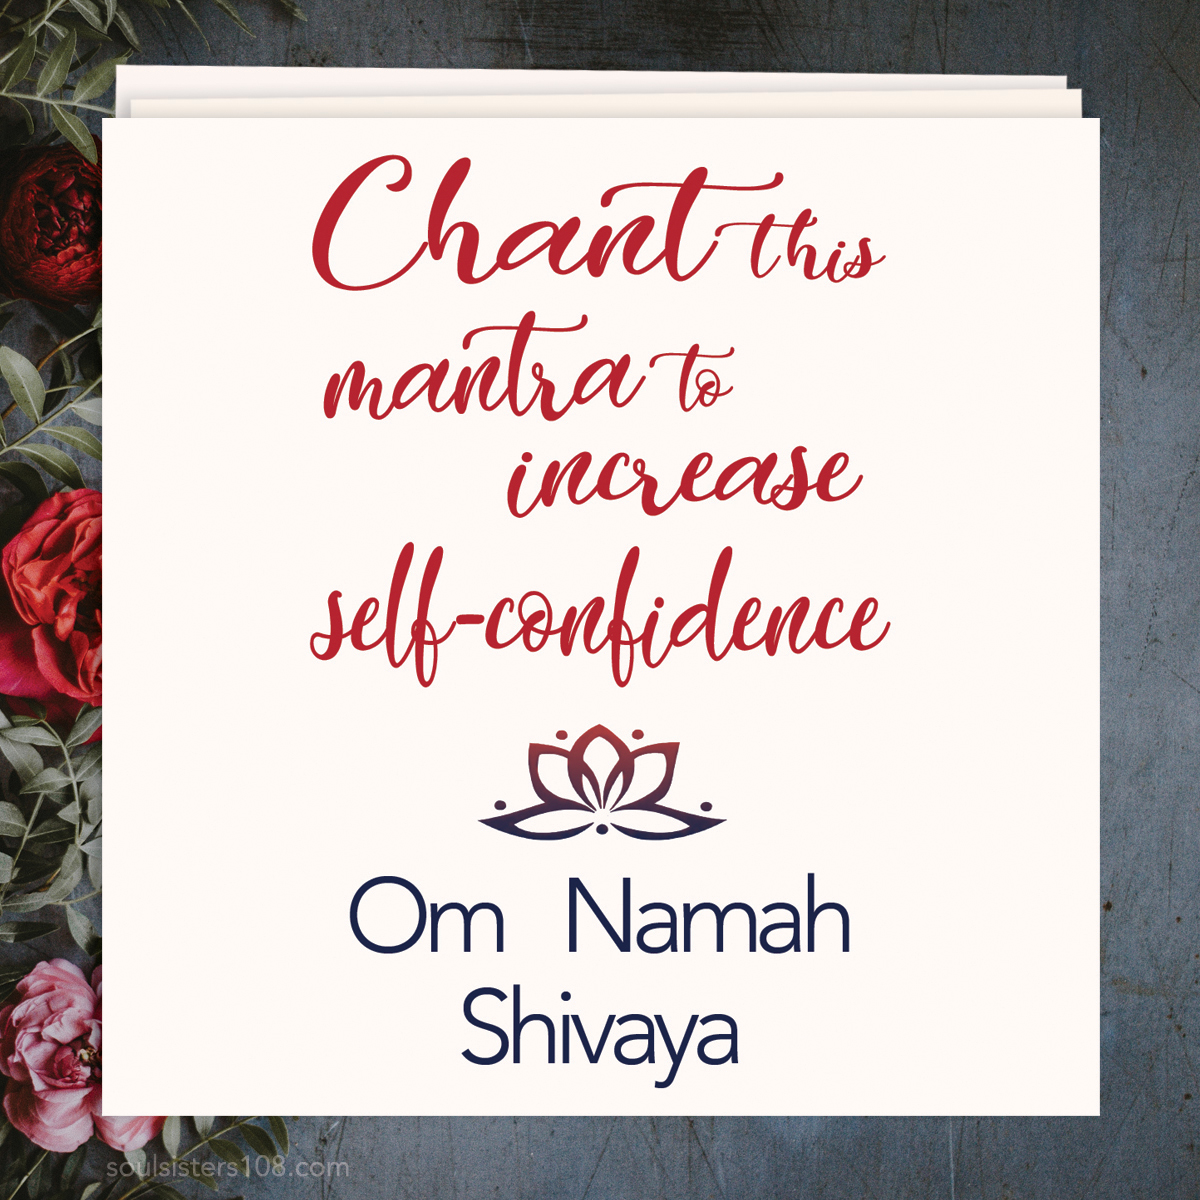 Soul Sisters 108 Mantra Cards Self-Confidence